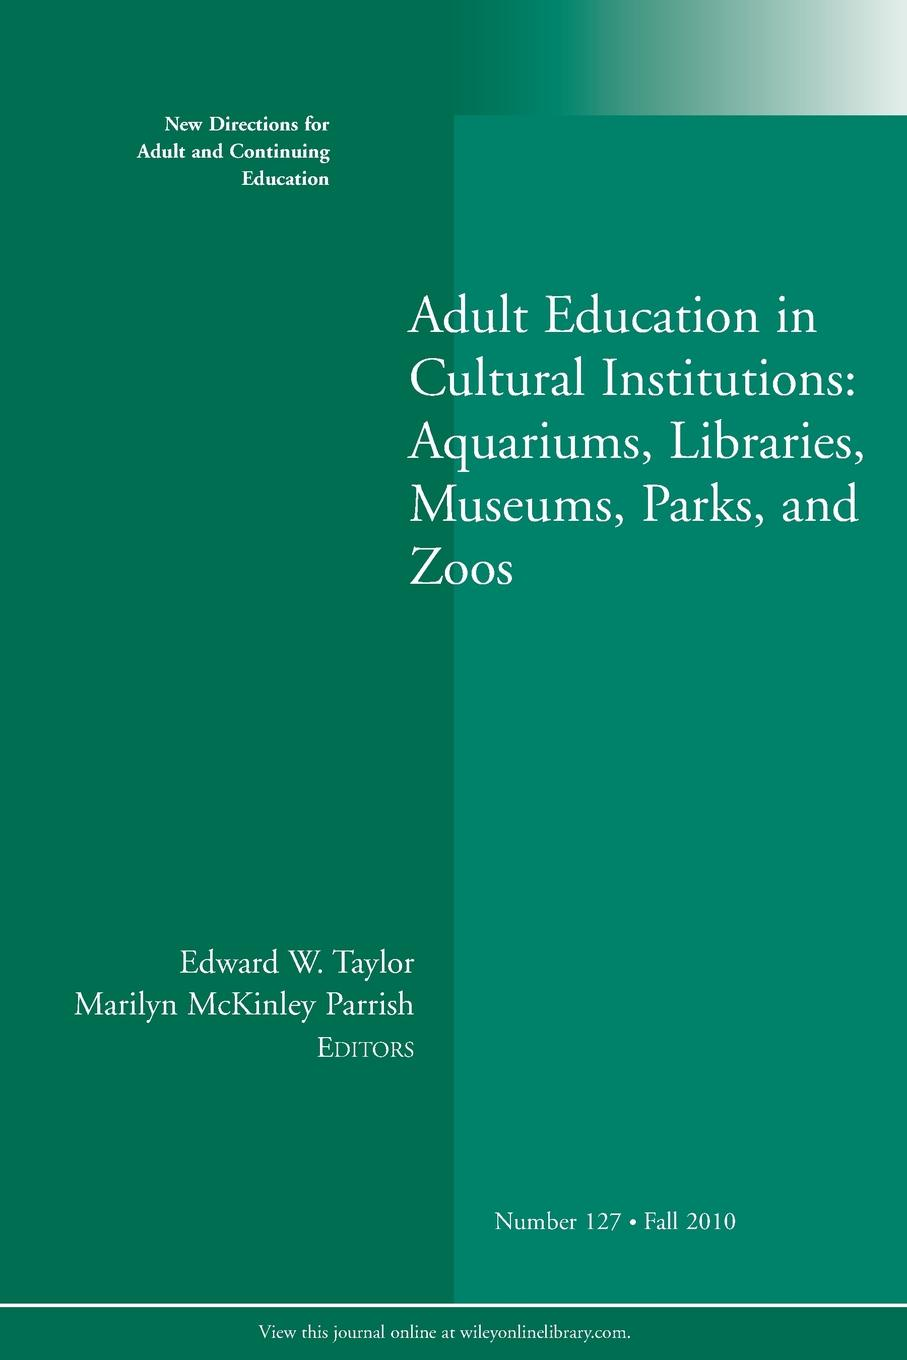 Adult Education in Cultural Institutions. Aquariums, Libraries, Museums, Parks, and Zoos parks and people